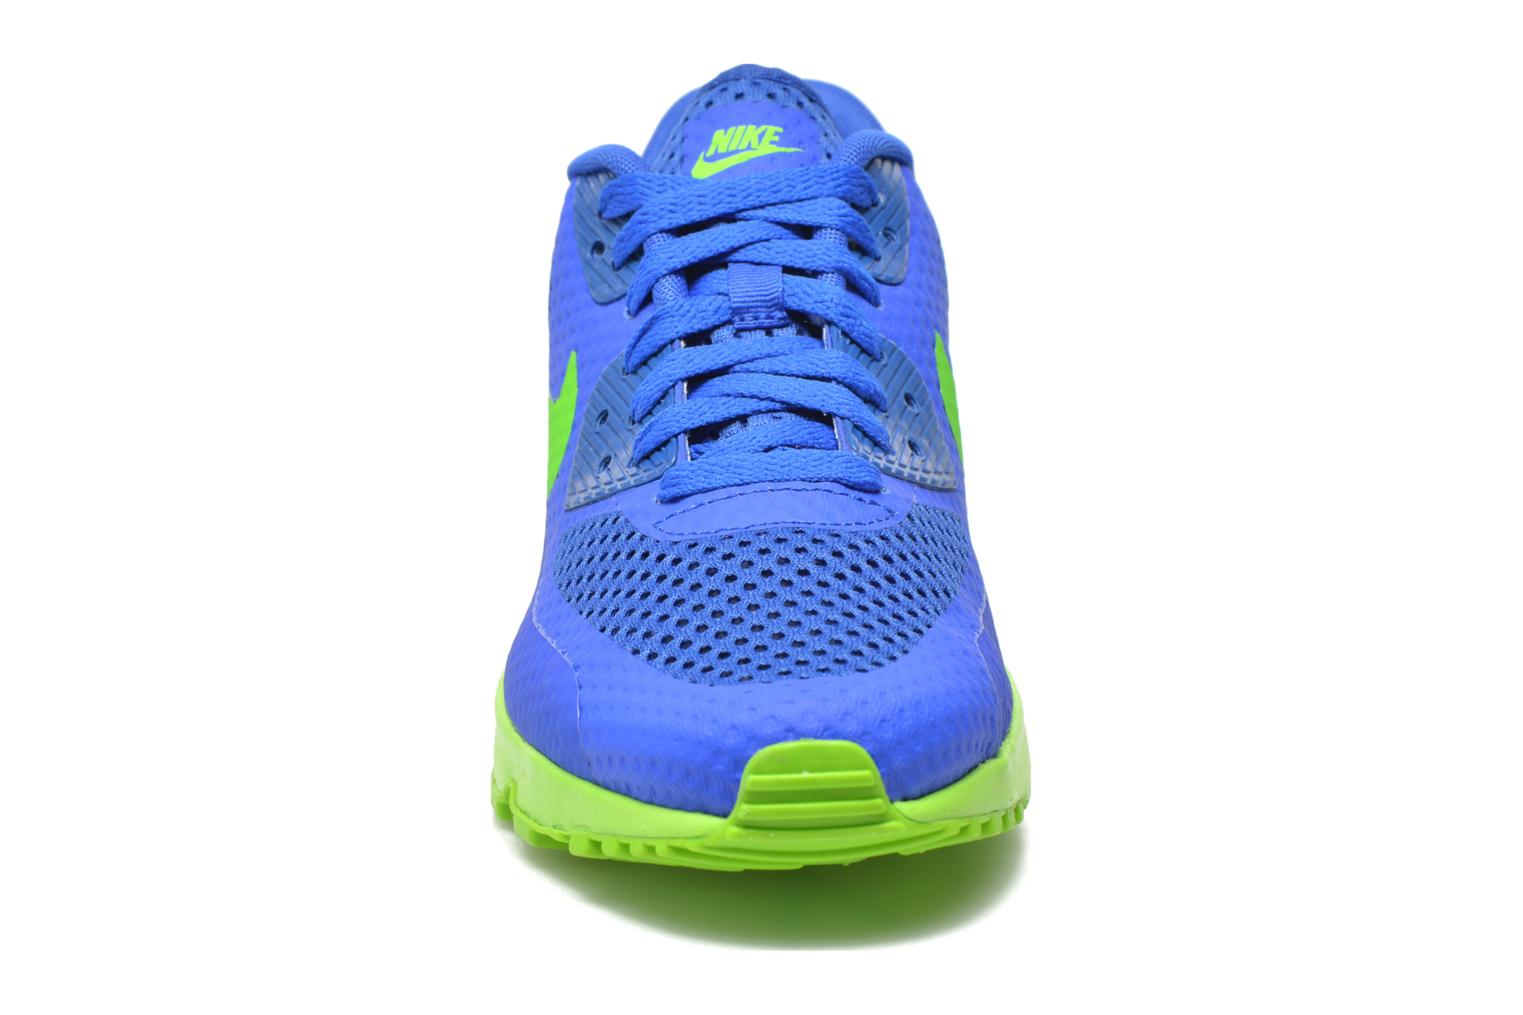 Nike Air Max 90 Br (Gs) Racer Blue Electric Green-Blk